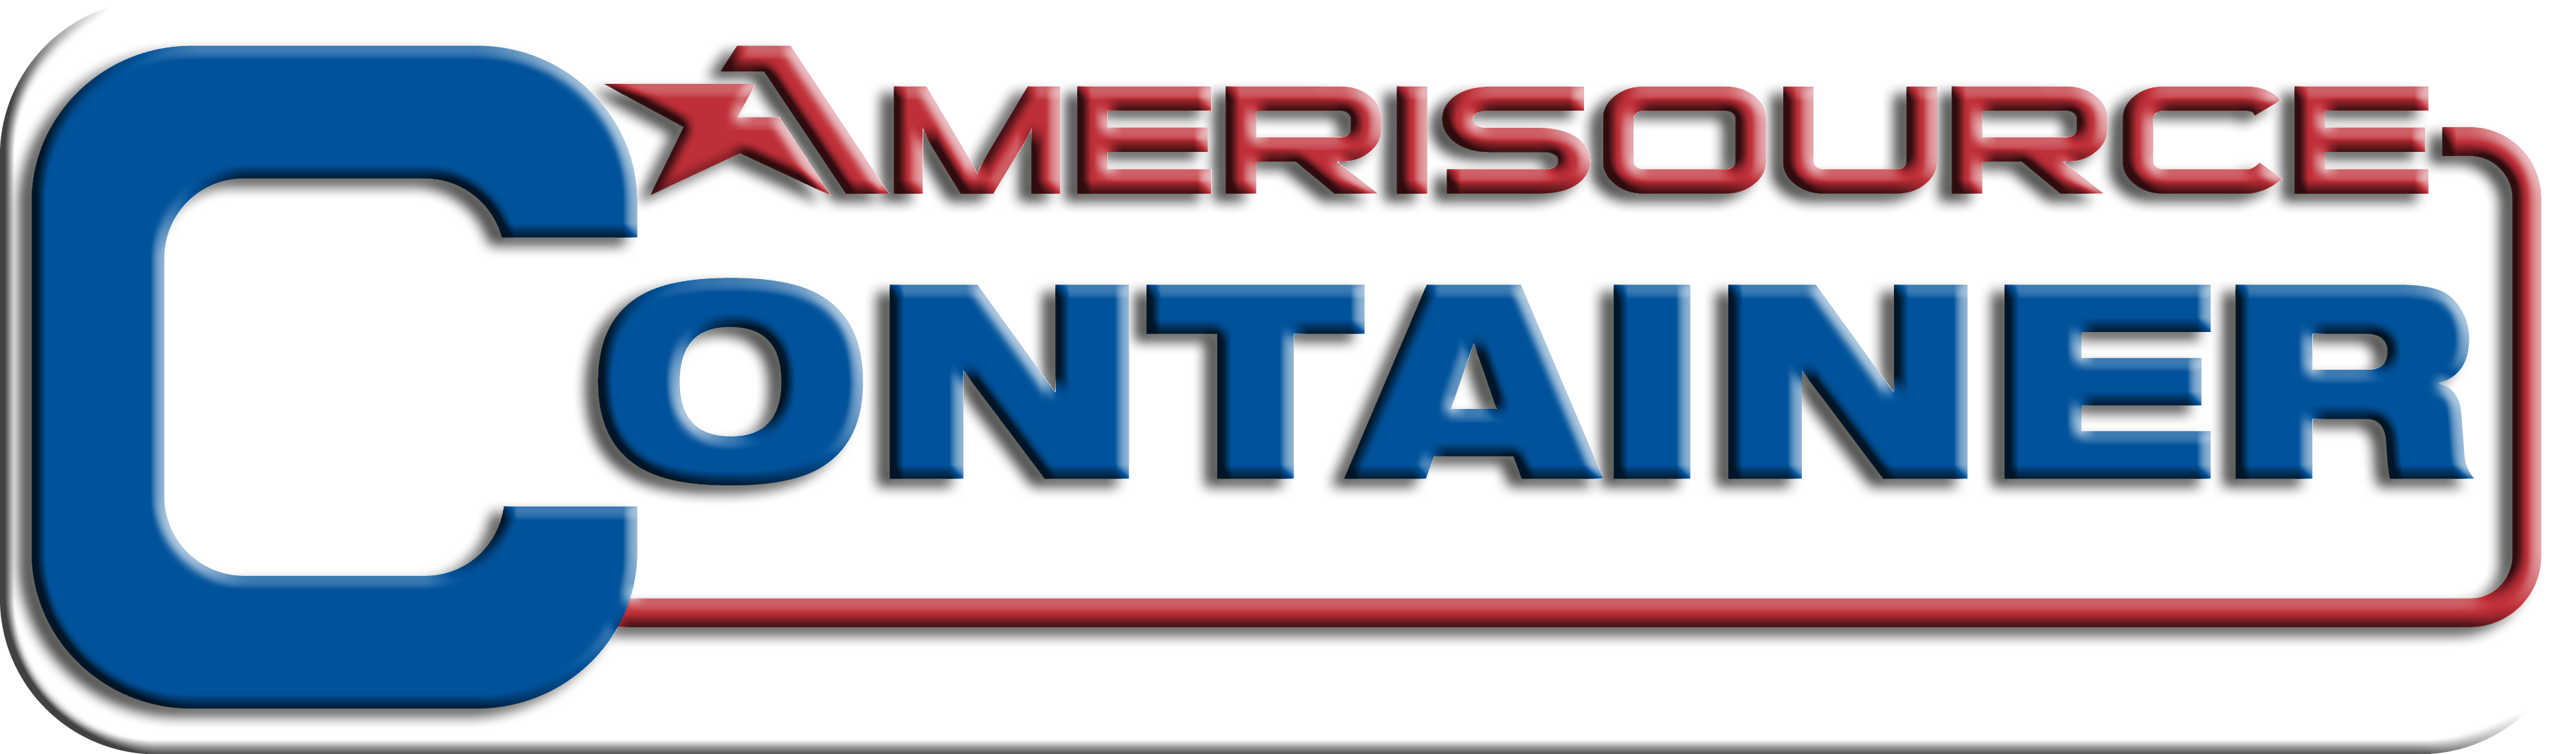 Amerisource Container logo